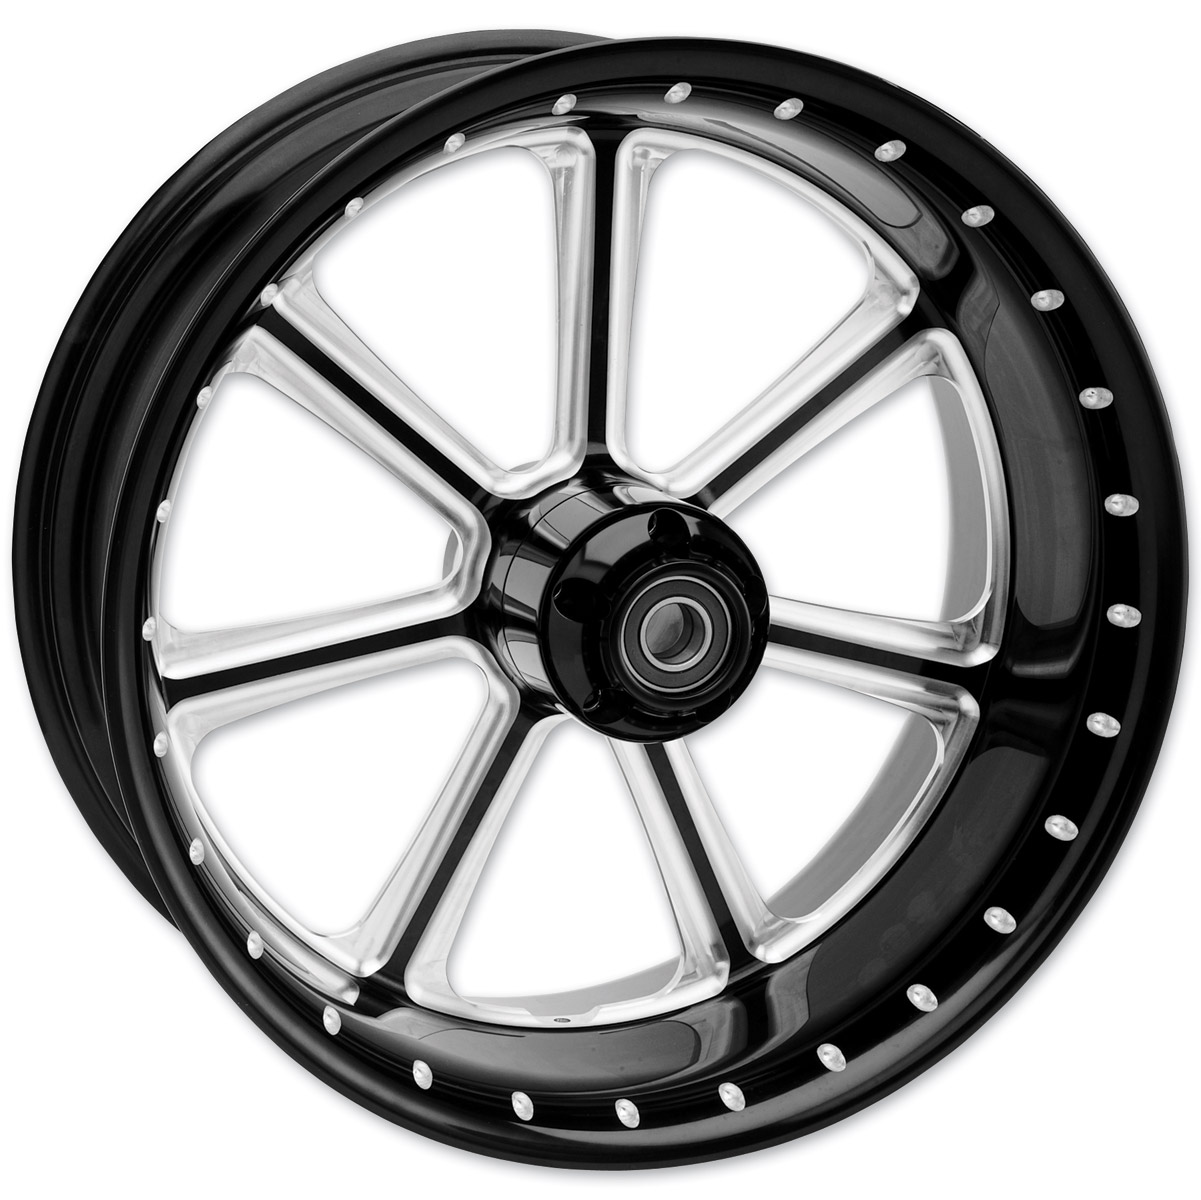 Roland Sands Design Contrast Cut Diesel Rear Wheel, 18 x 3.5